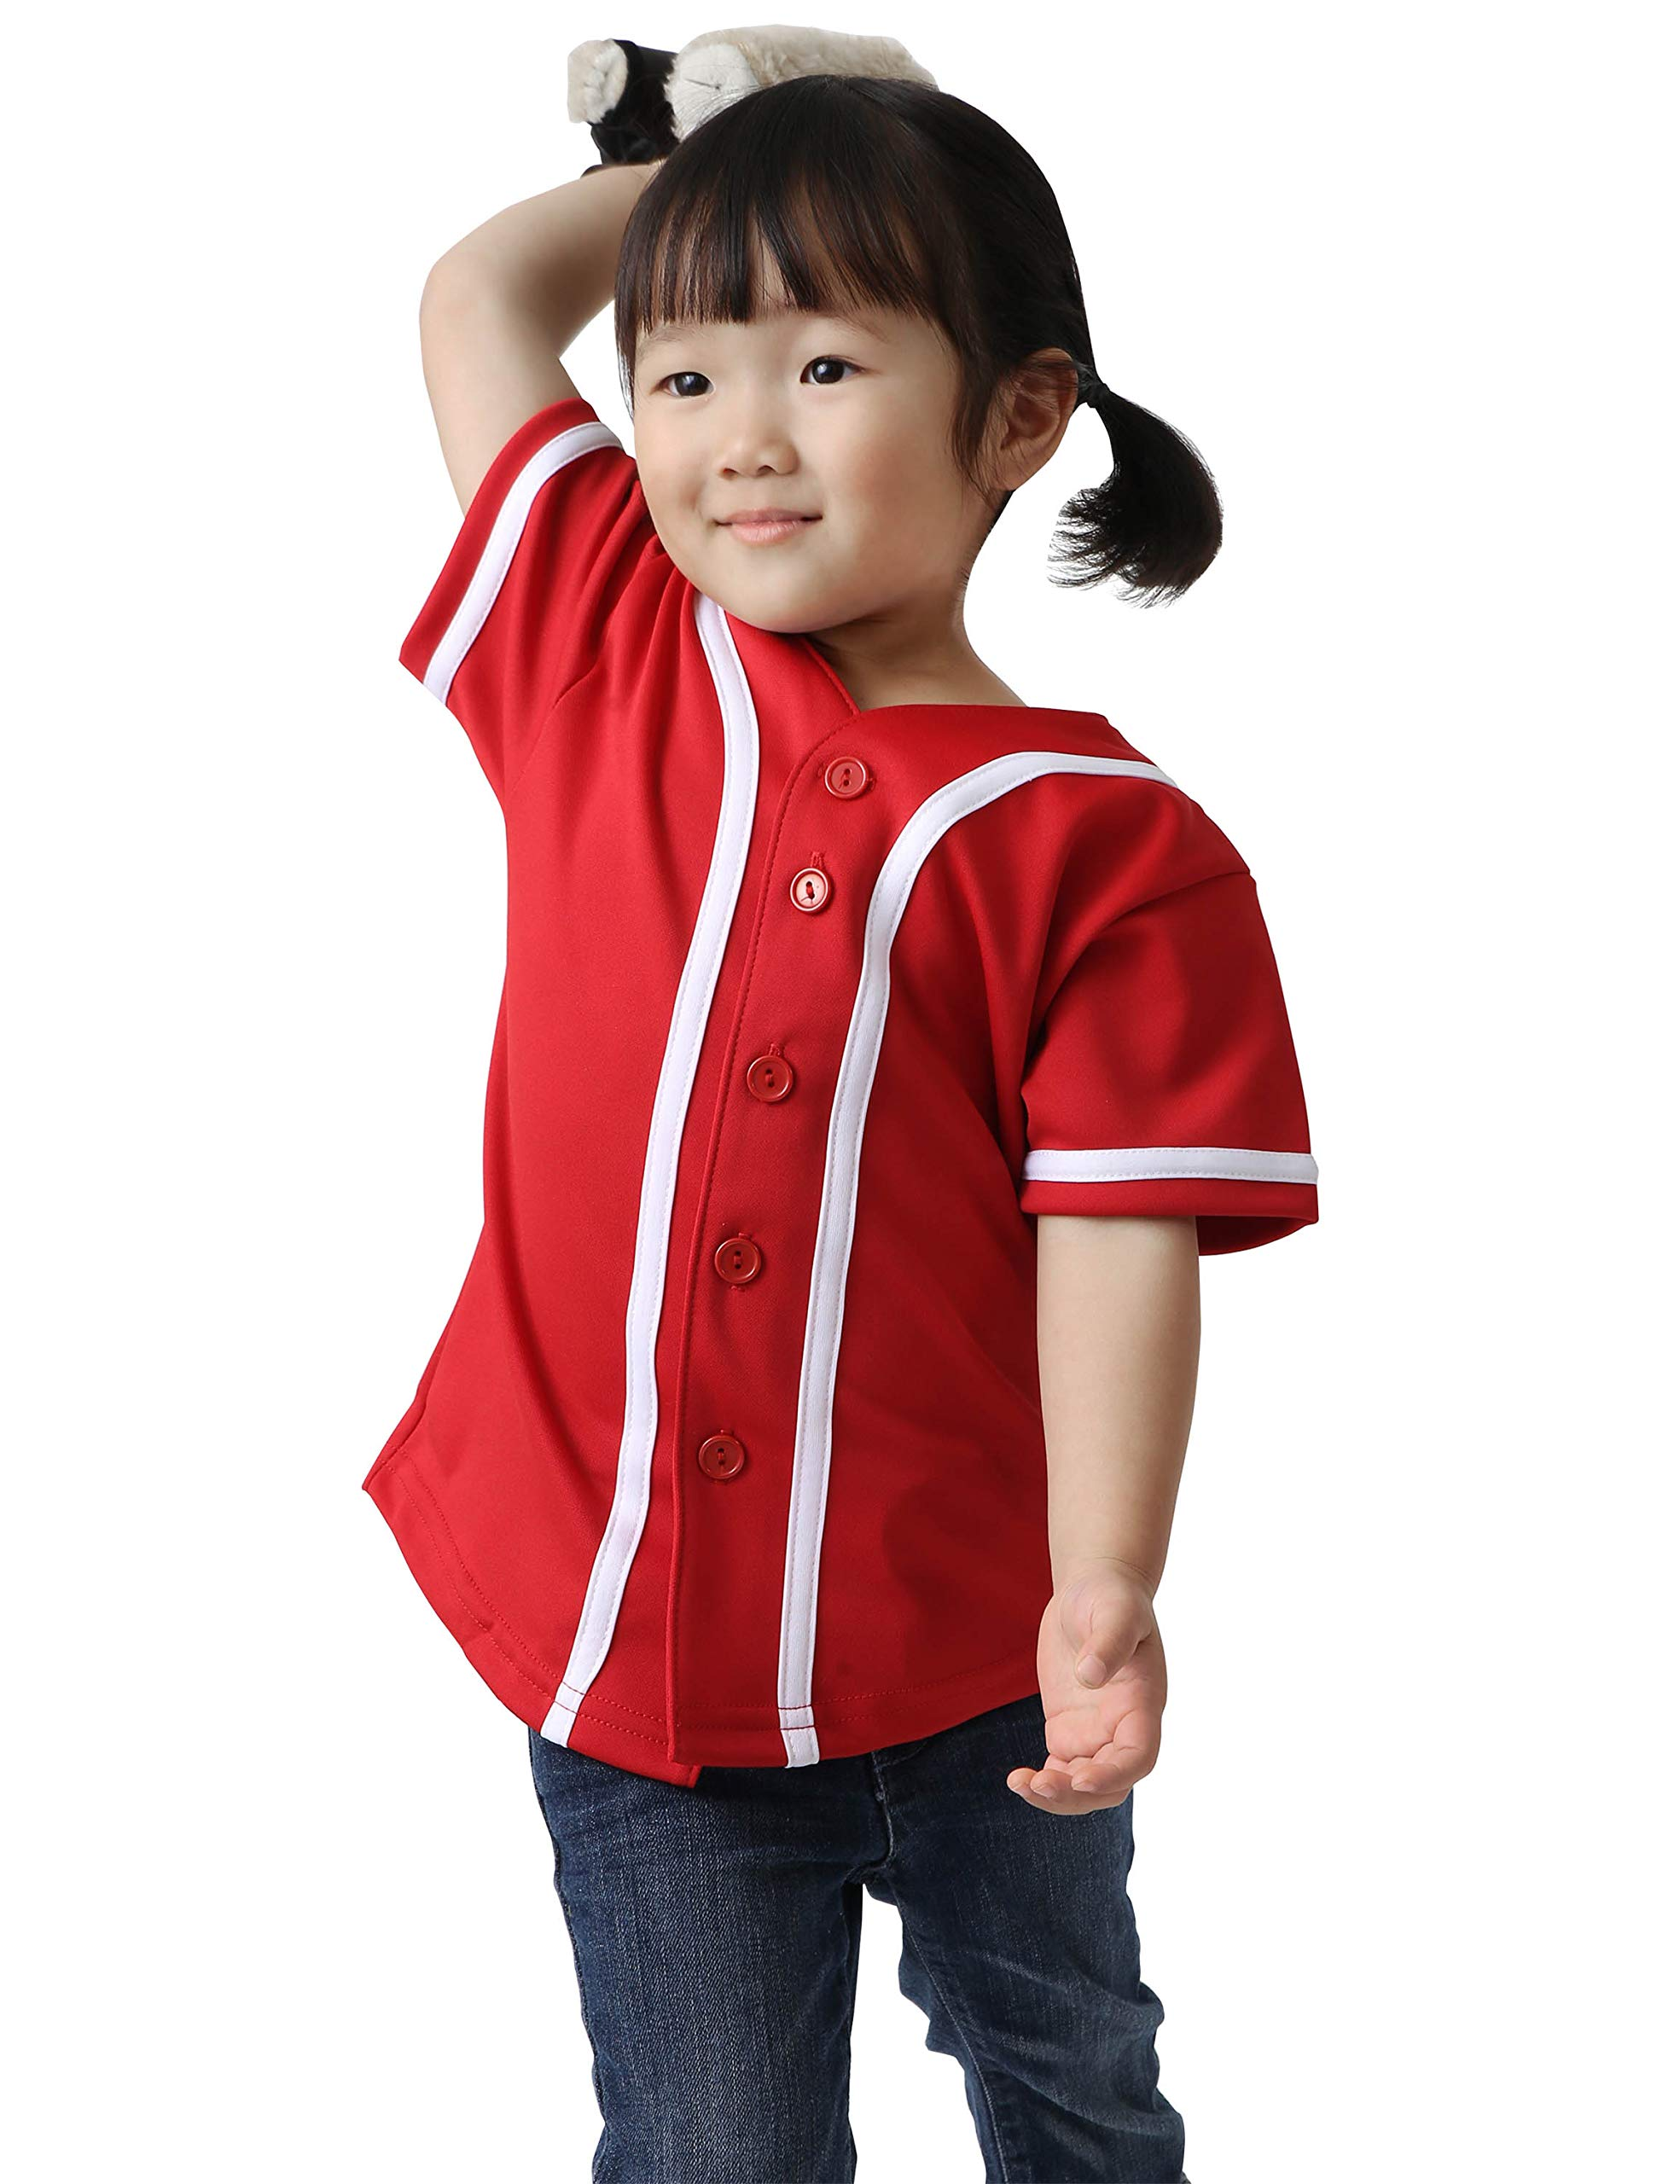 Ma Croix Kids Premium Baseball Jersey Active Button Shirt Team Uniform Little League (2 Toddler, 5up01_red.WHI) by Ma Croix